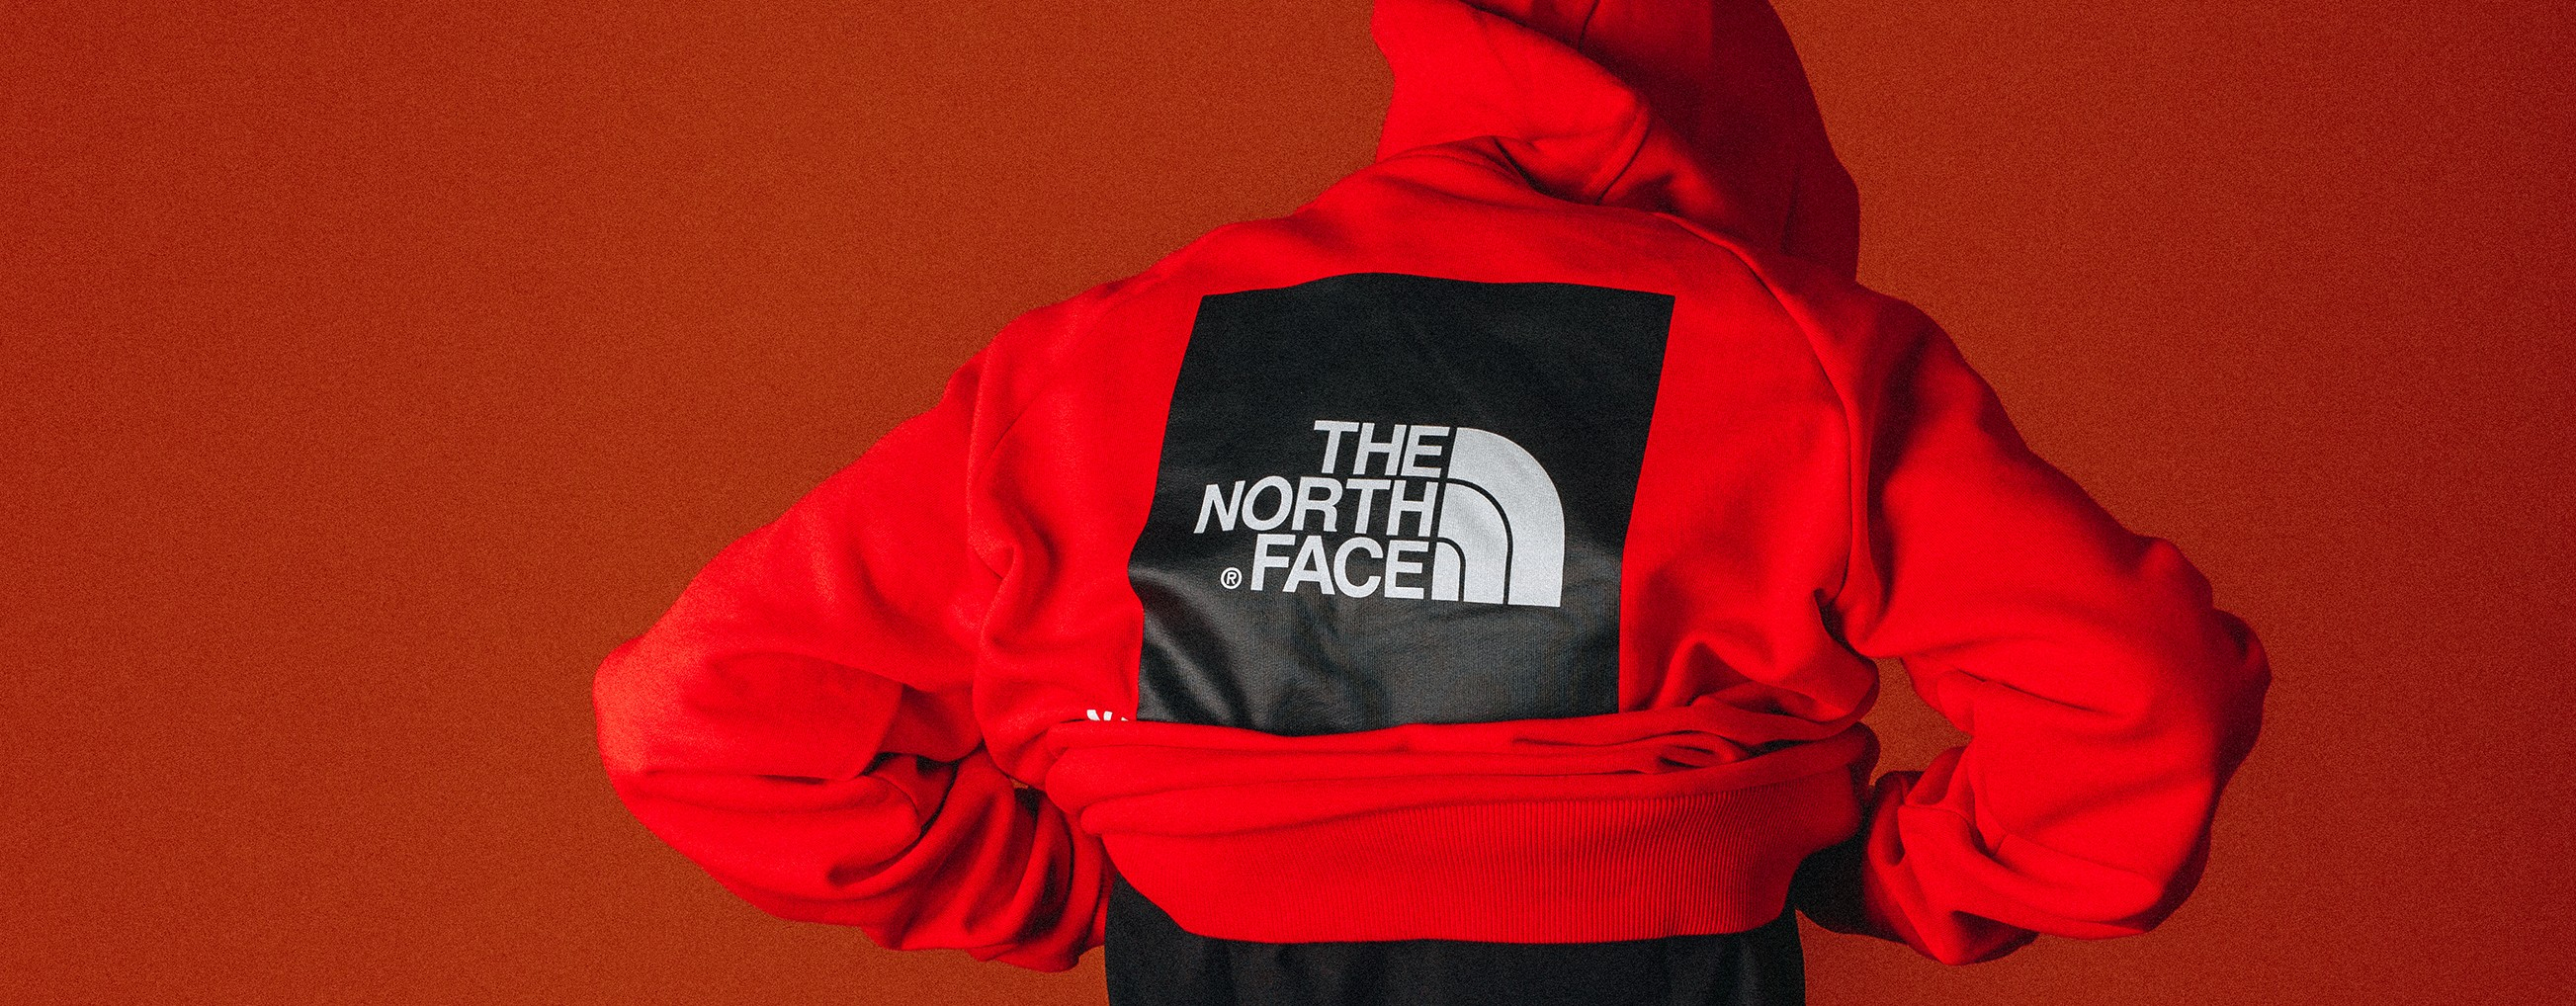 The North Face Apparel Collection